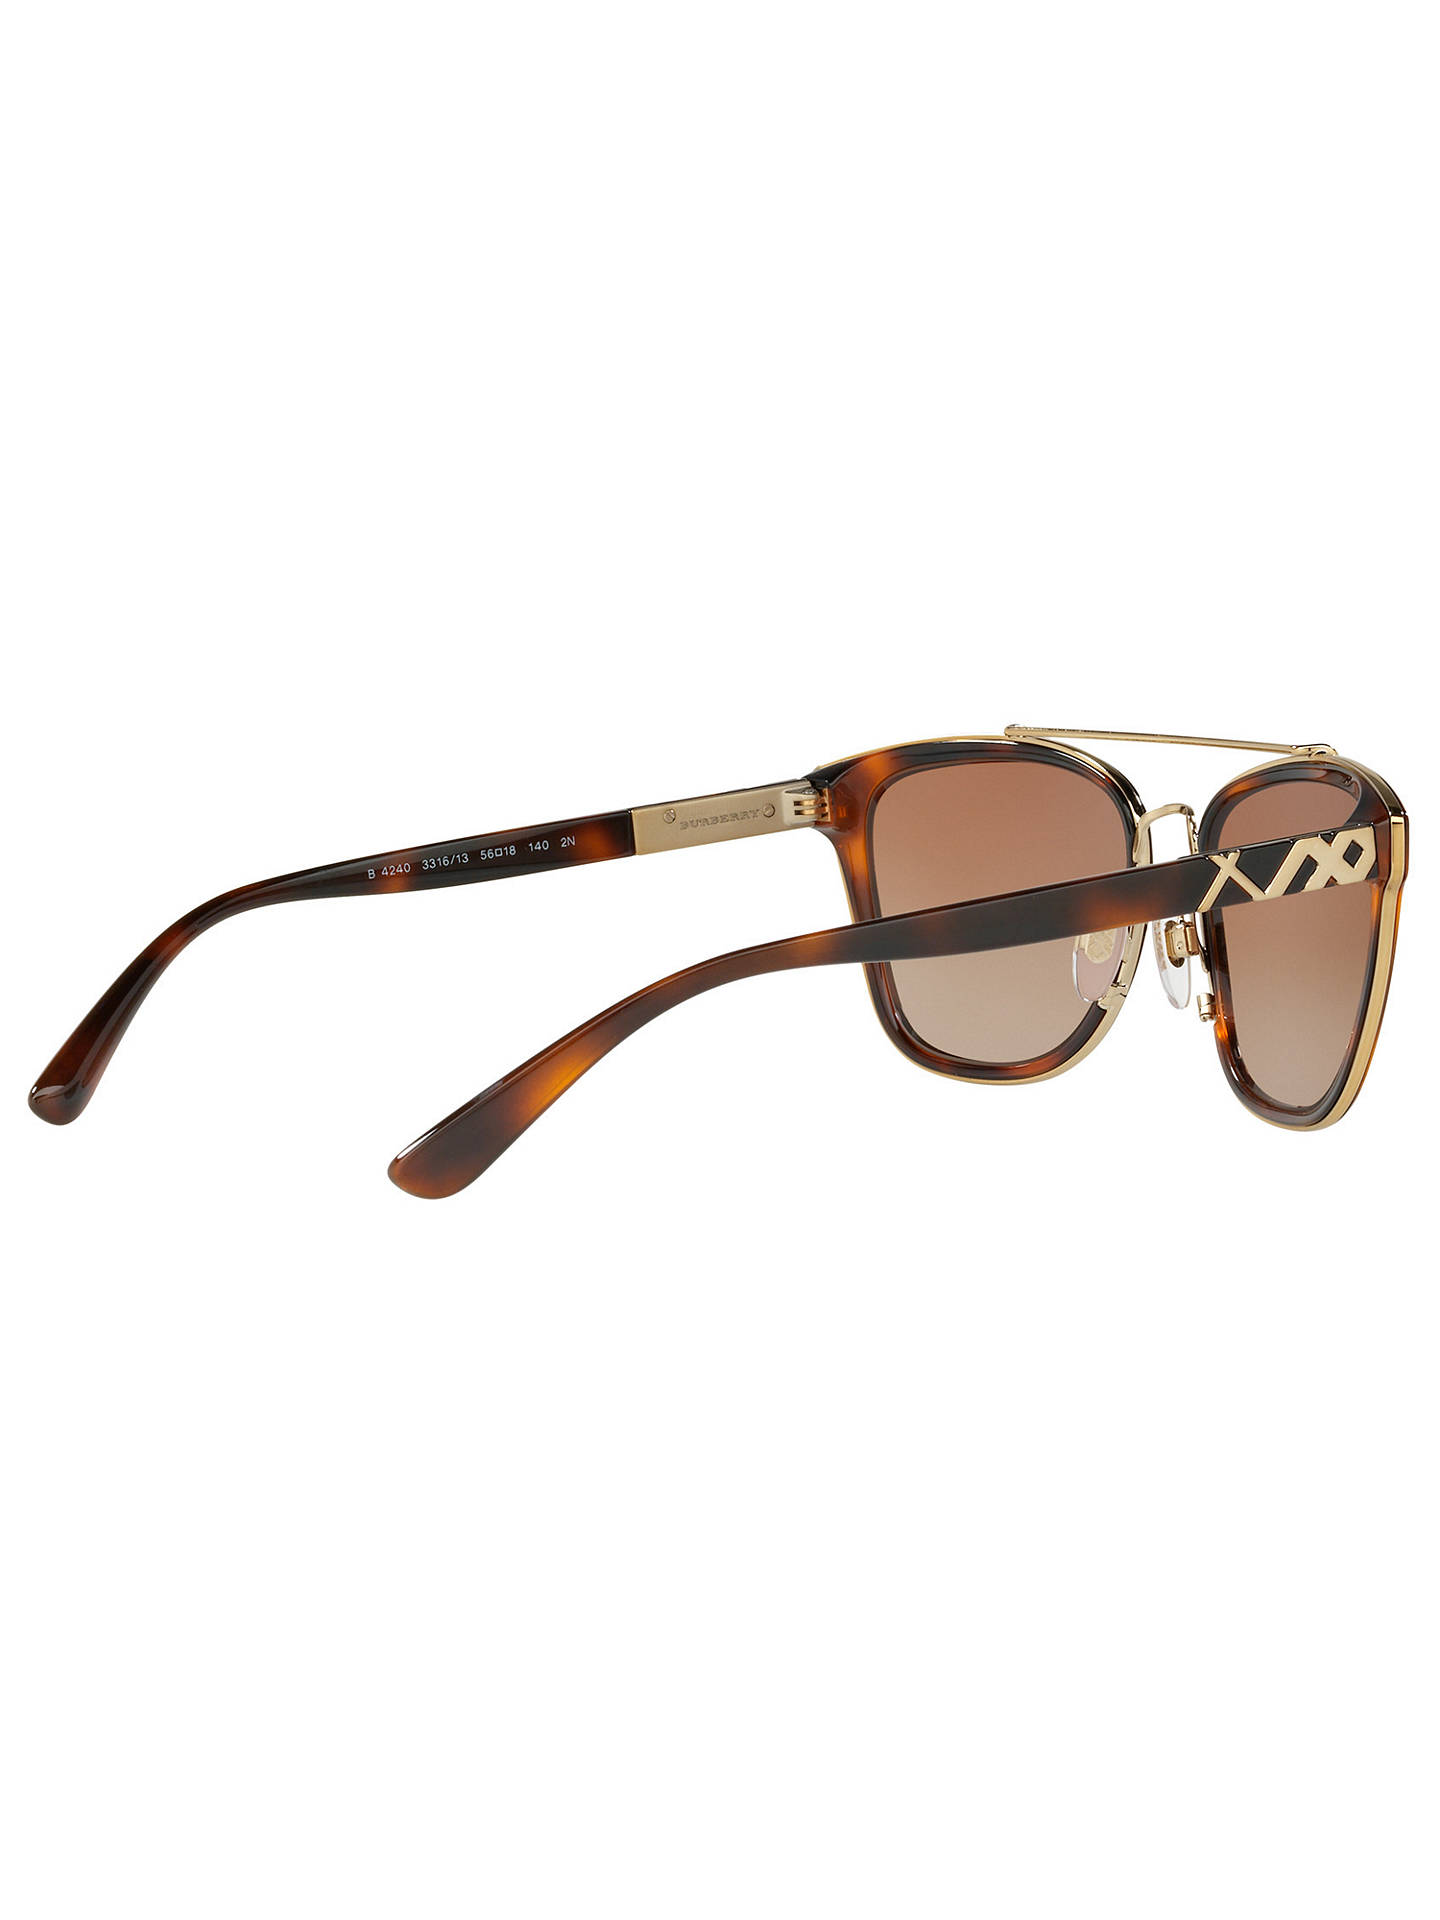 BuyBurberry BE4240 D-Frame Sunglasses, Tortoise/Brown Gradient Online at johnlewis.com